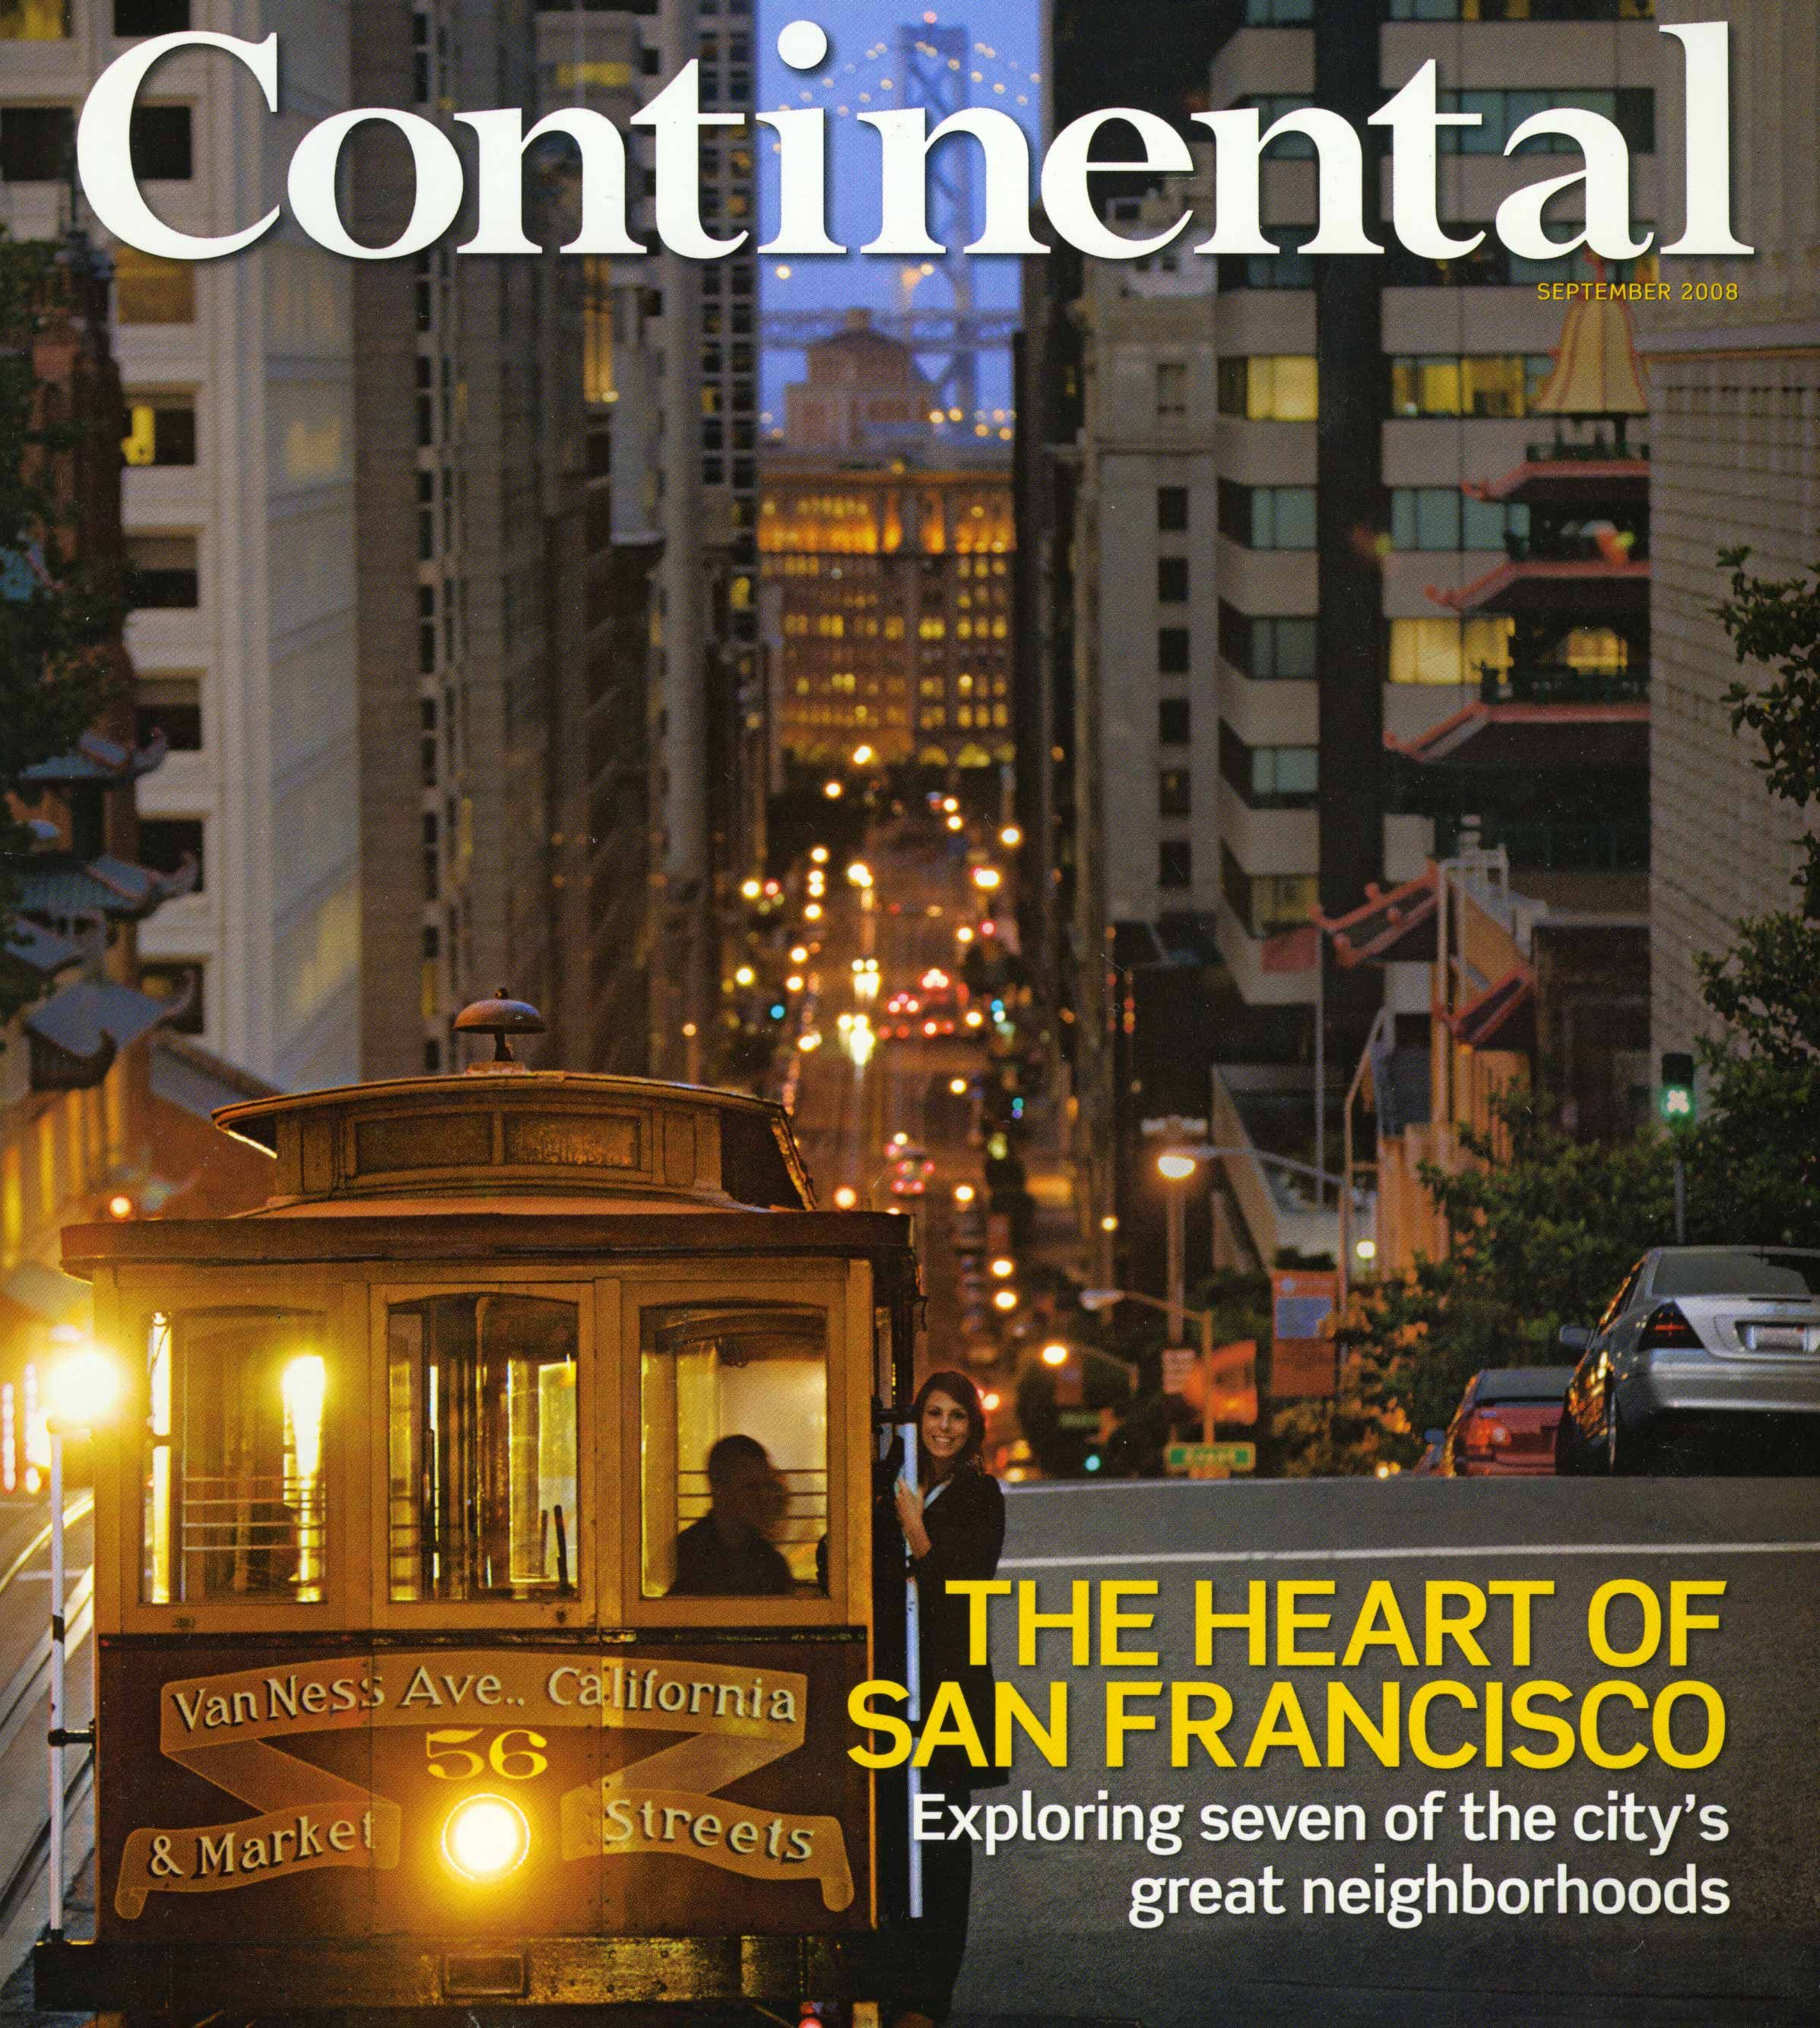 Continentalcover700.jpg